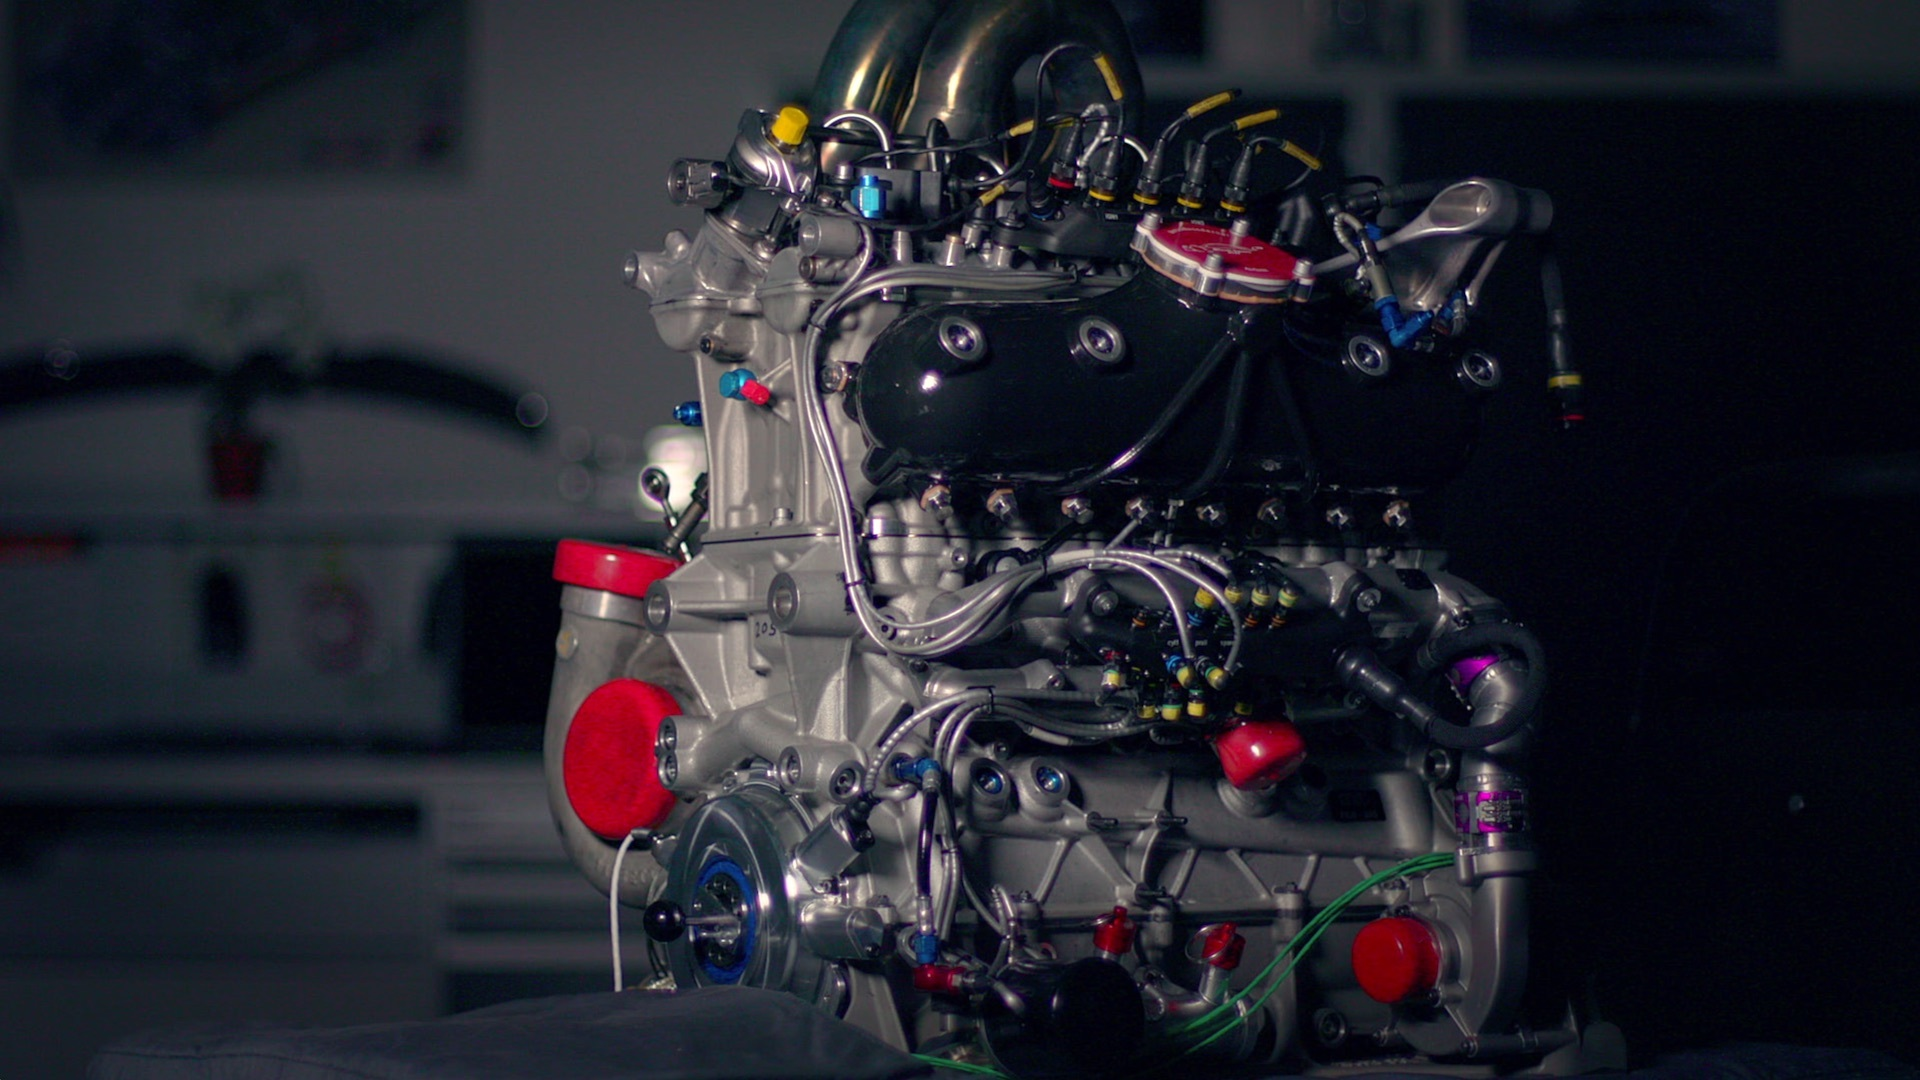 The new Audi turbo engine for the DTM